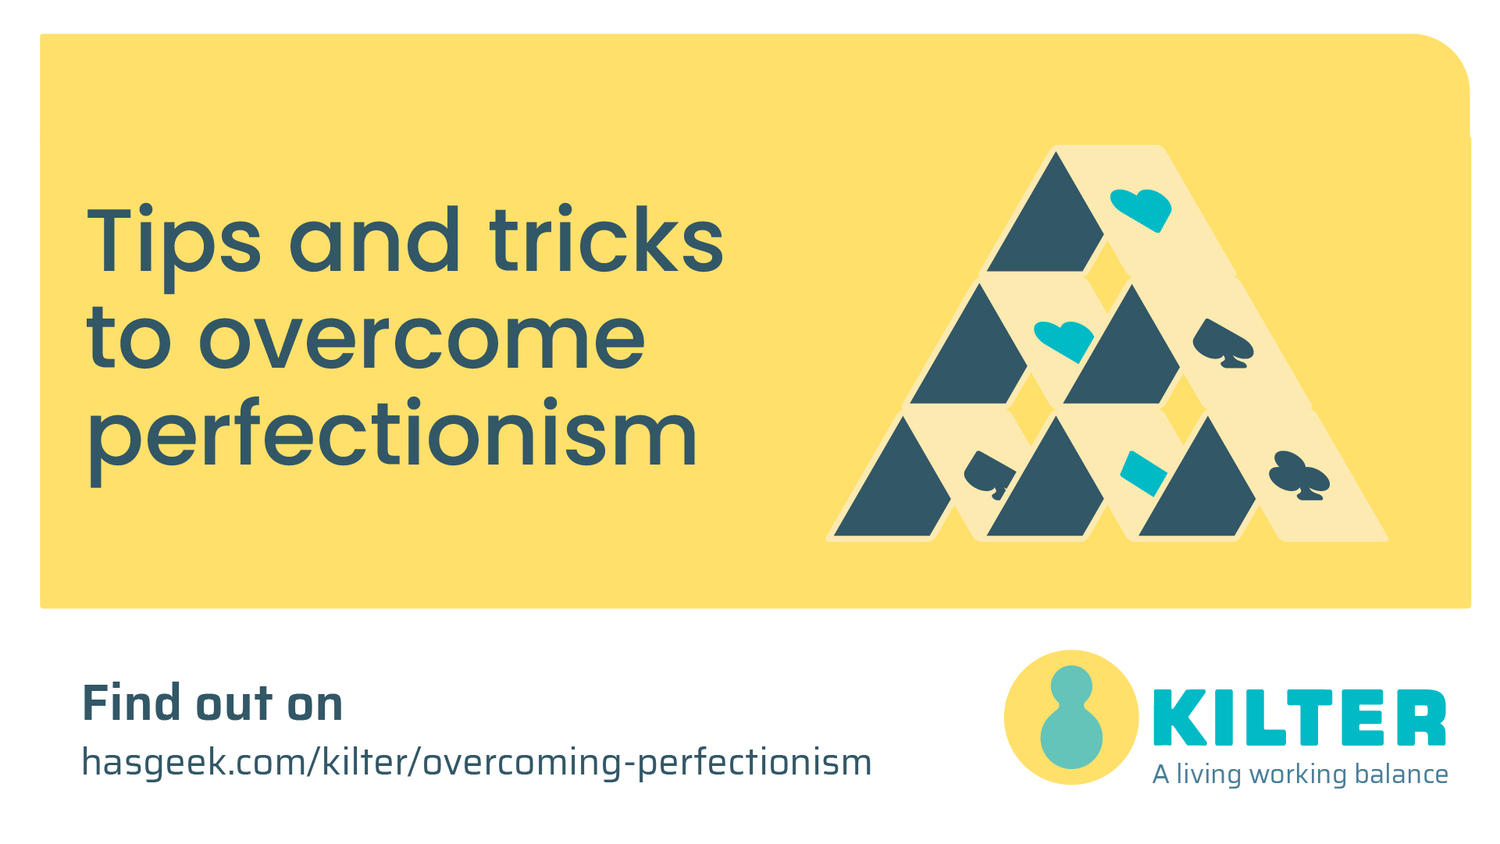 Tips and tricks to overcome perfectionism